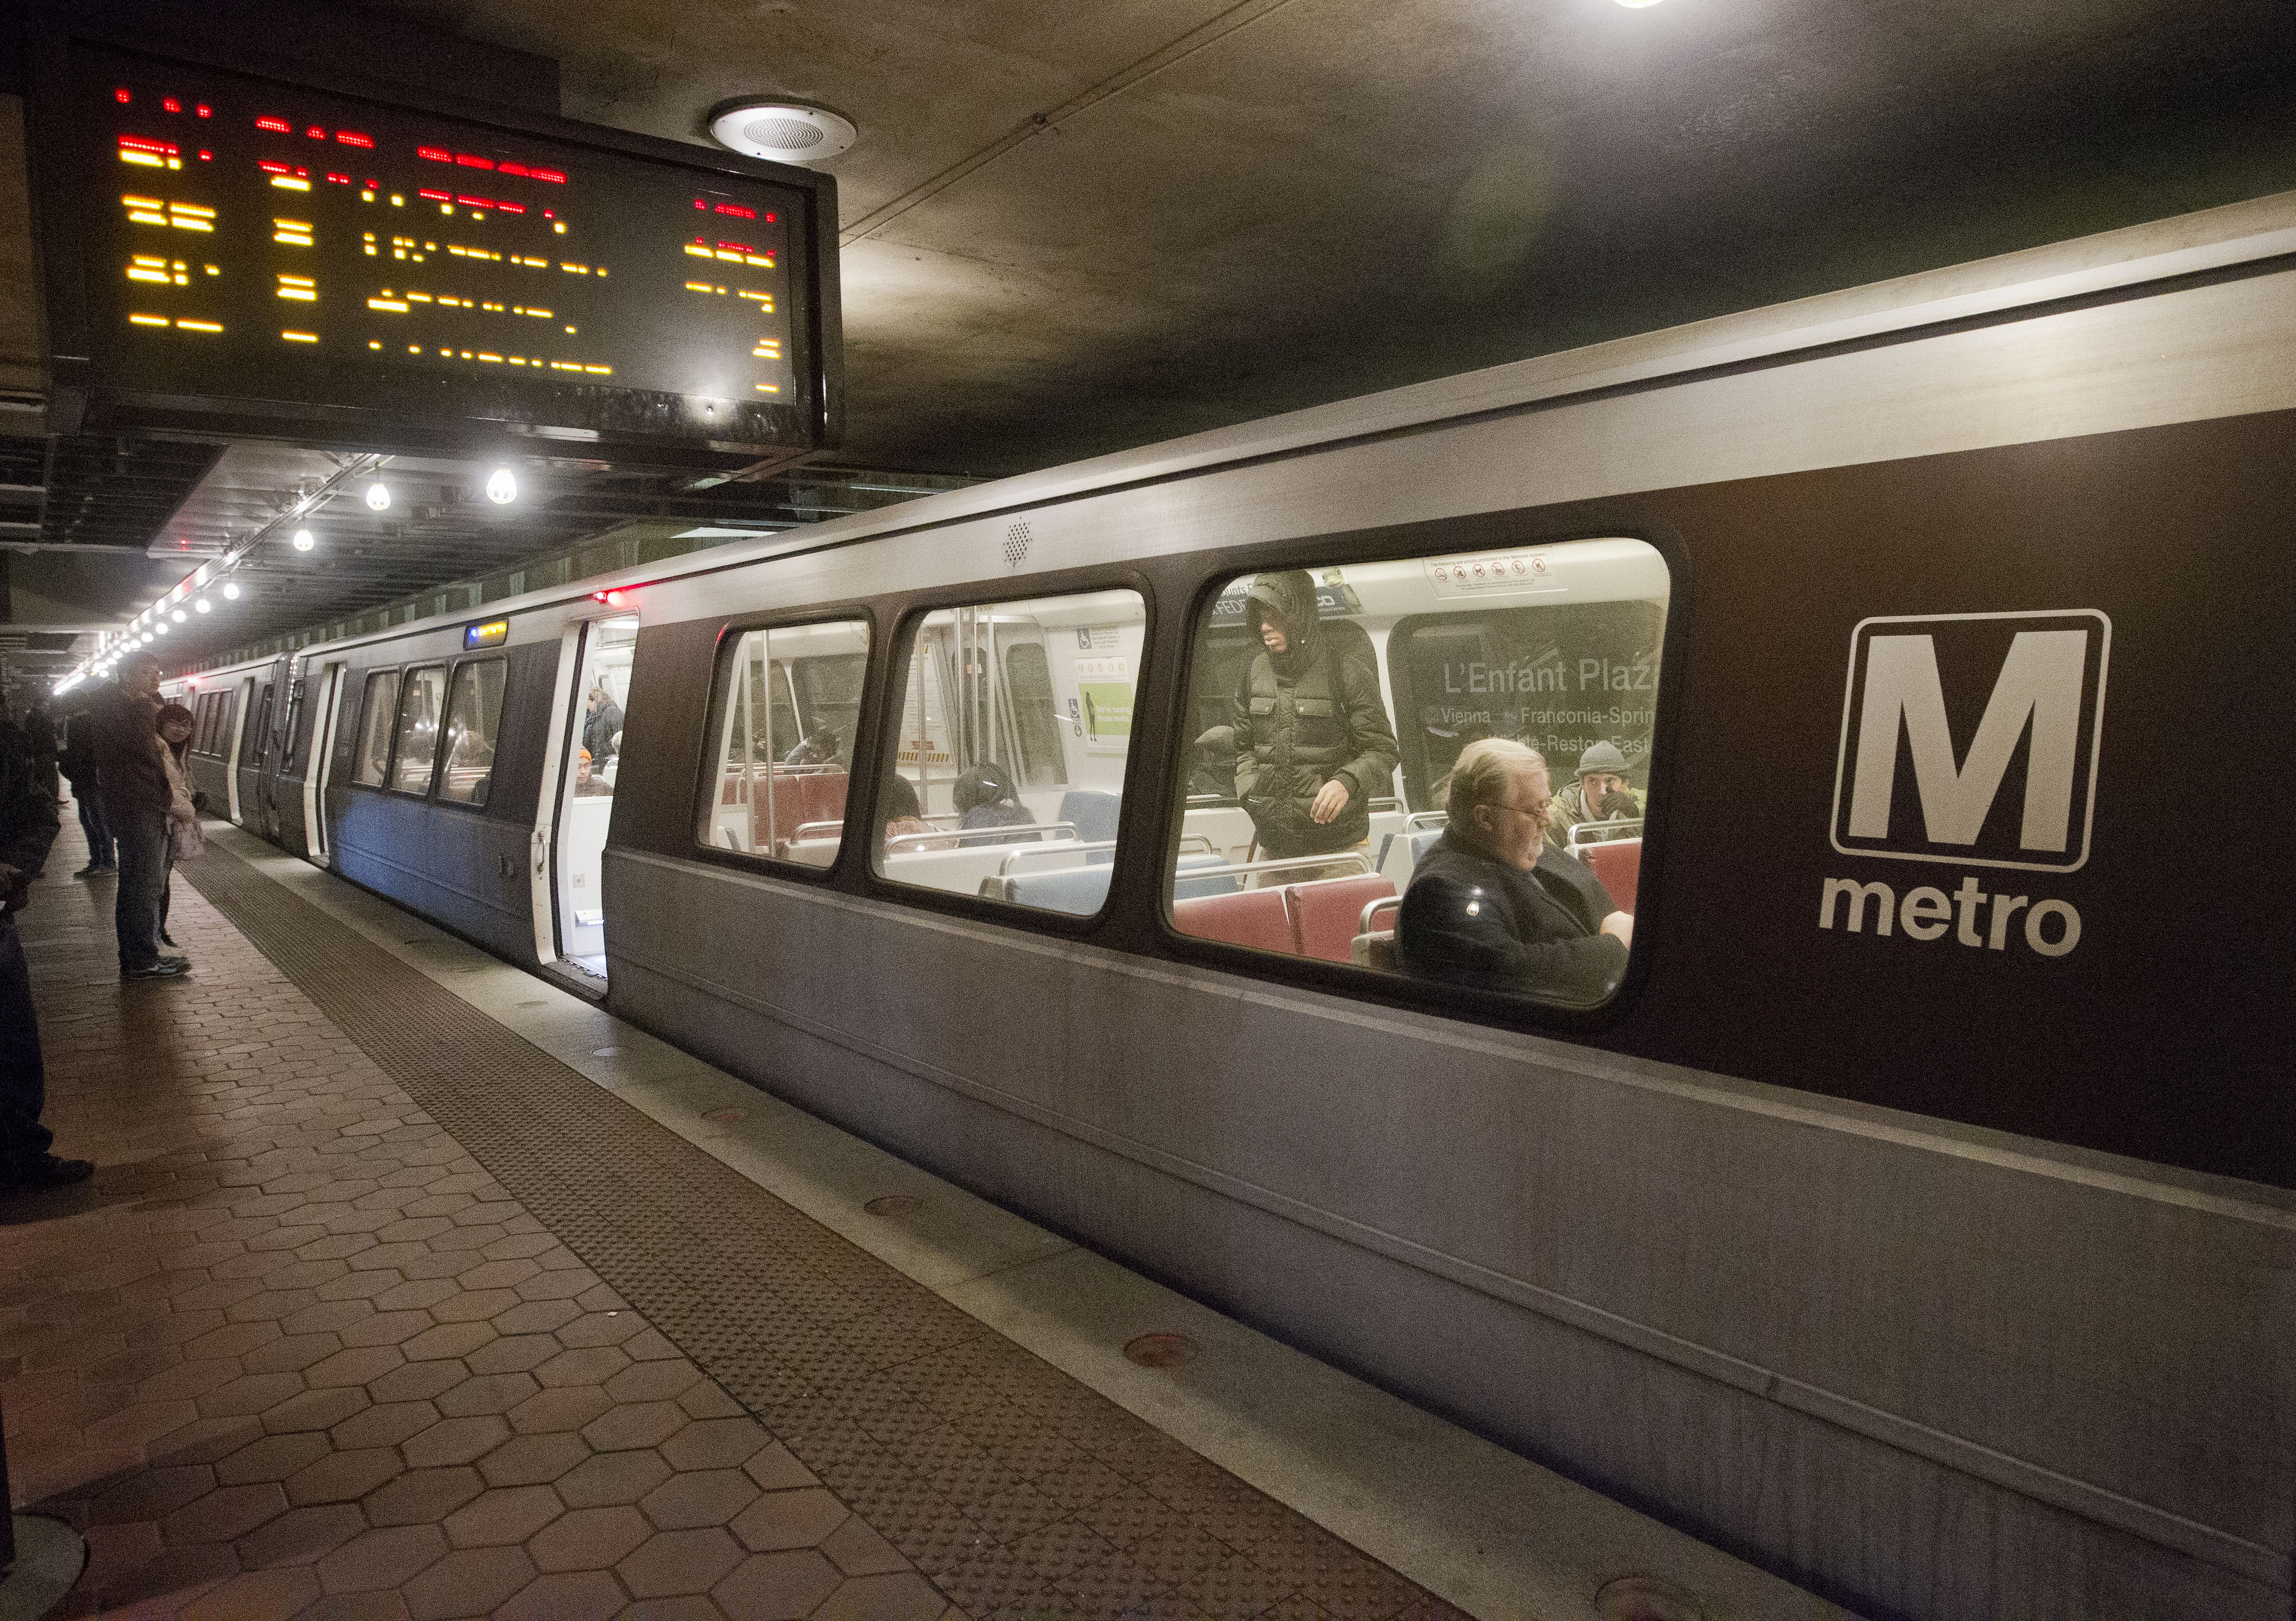 $1 million dispute: Does Metro really own its tunnels?